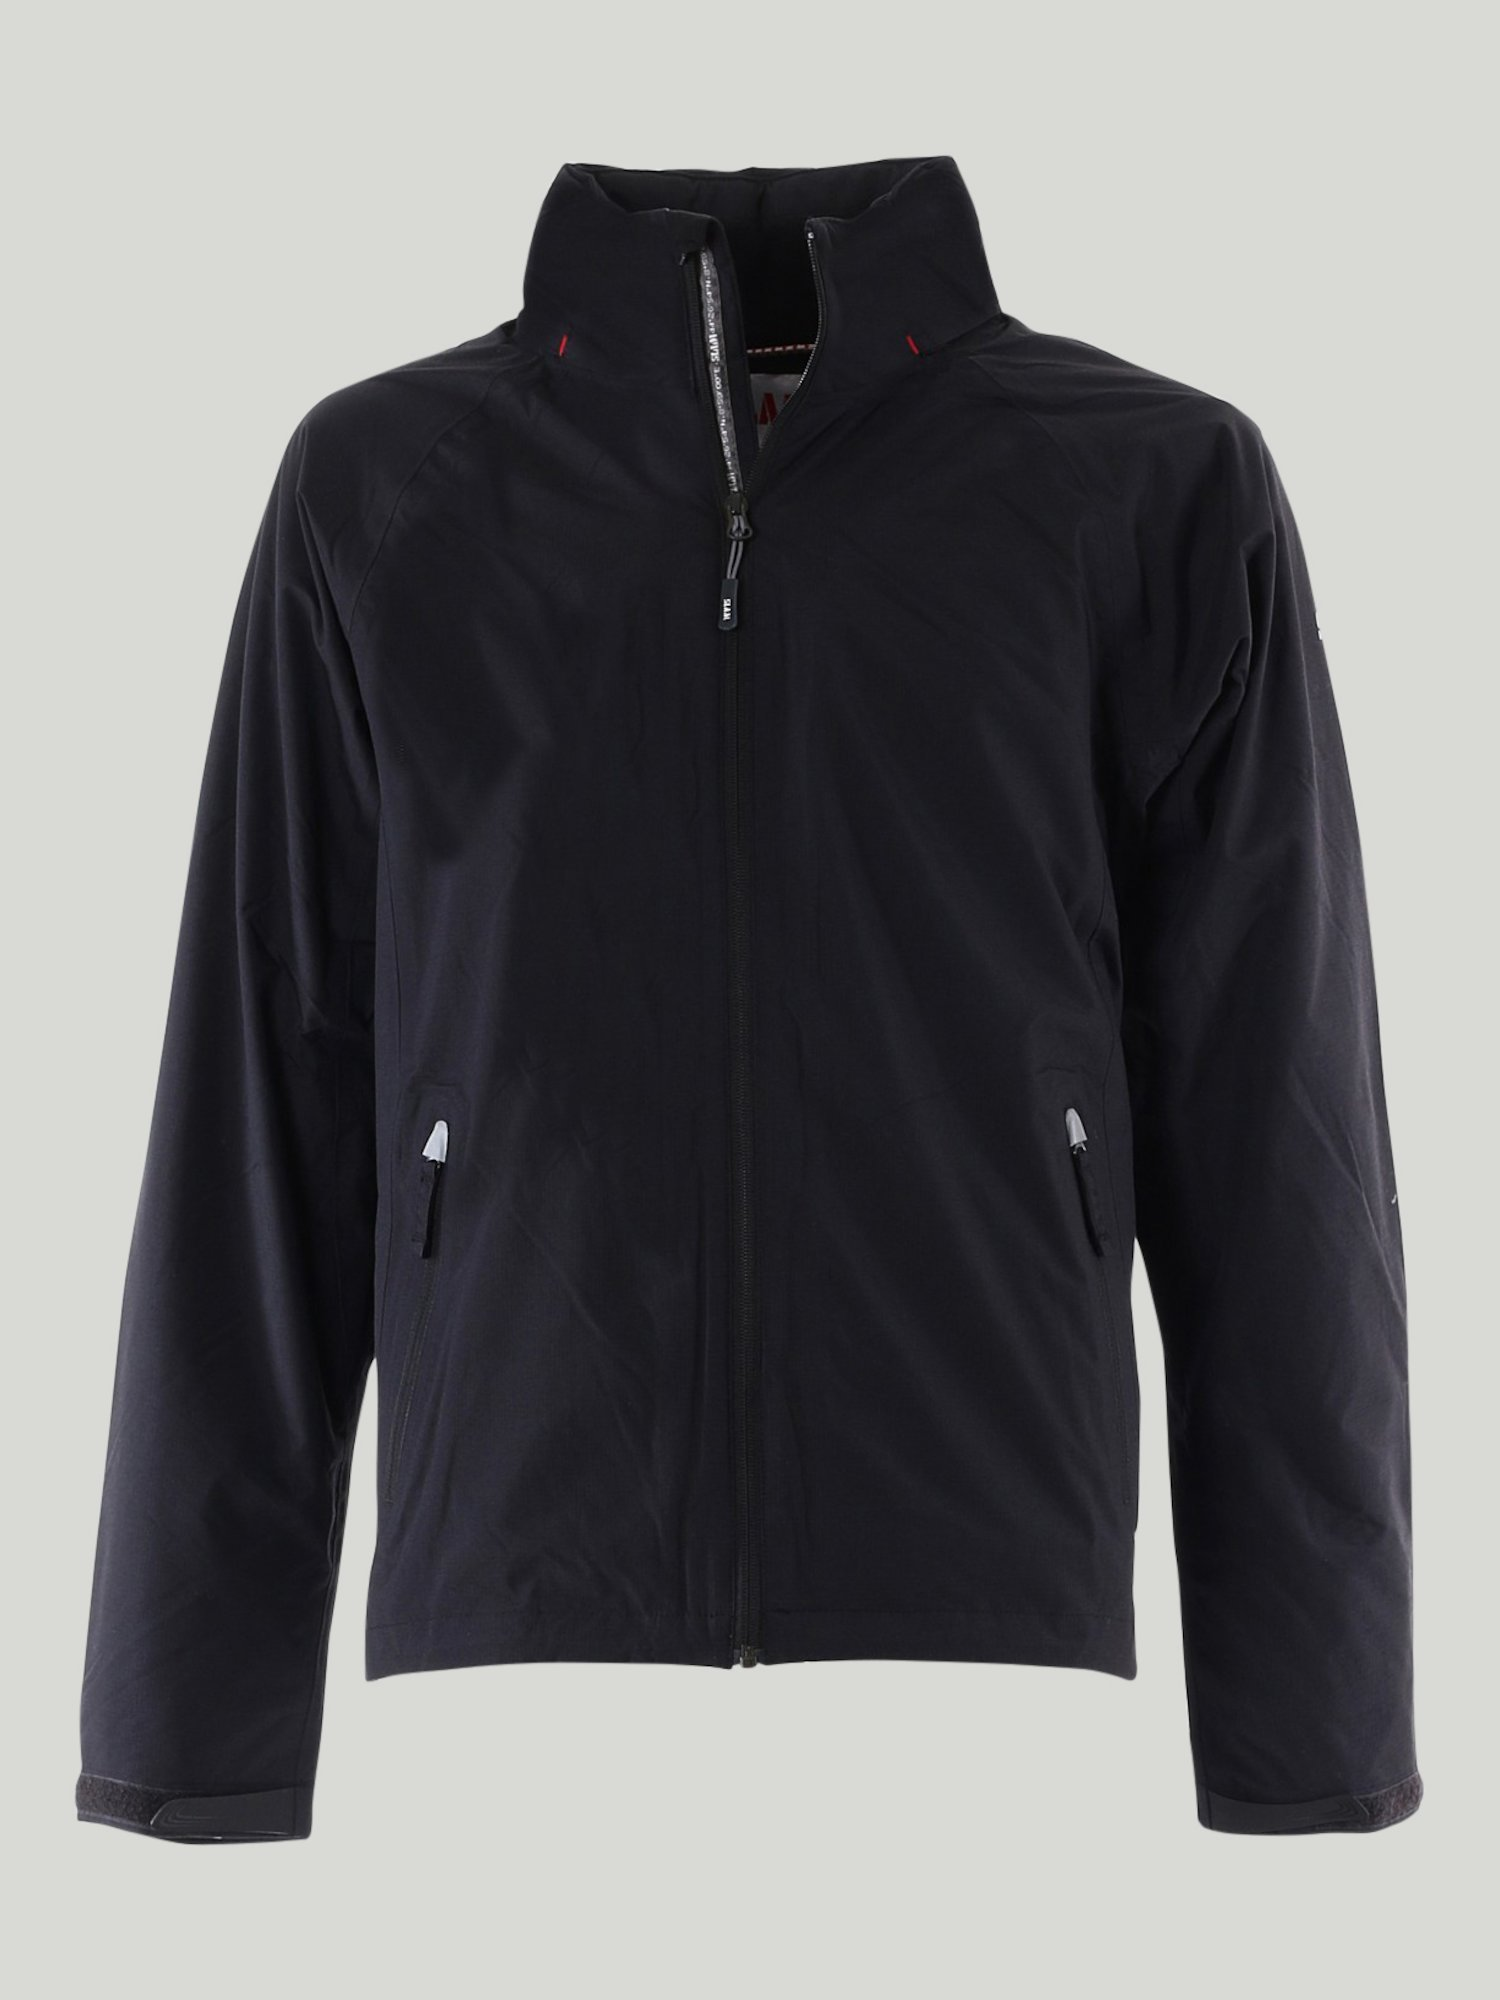 Portocervo jacket - Black